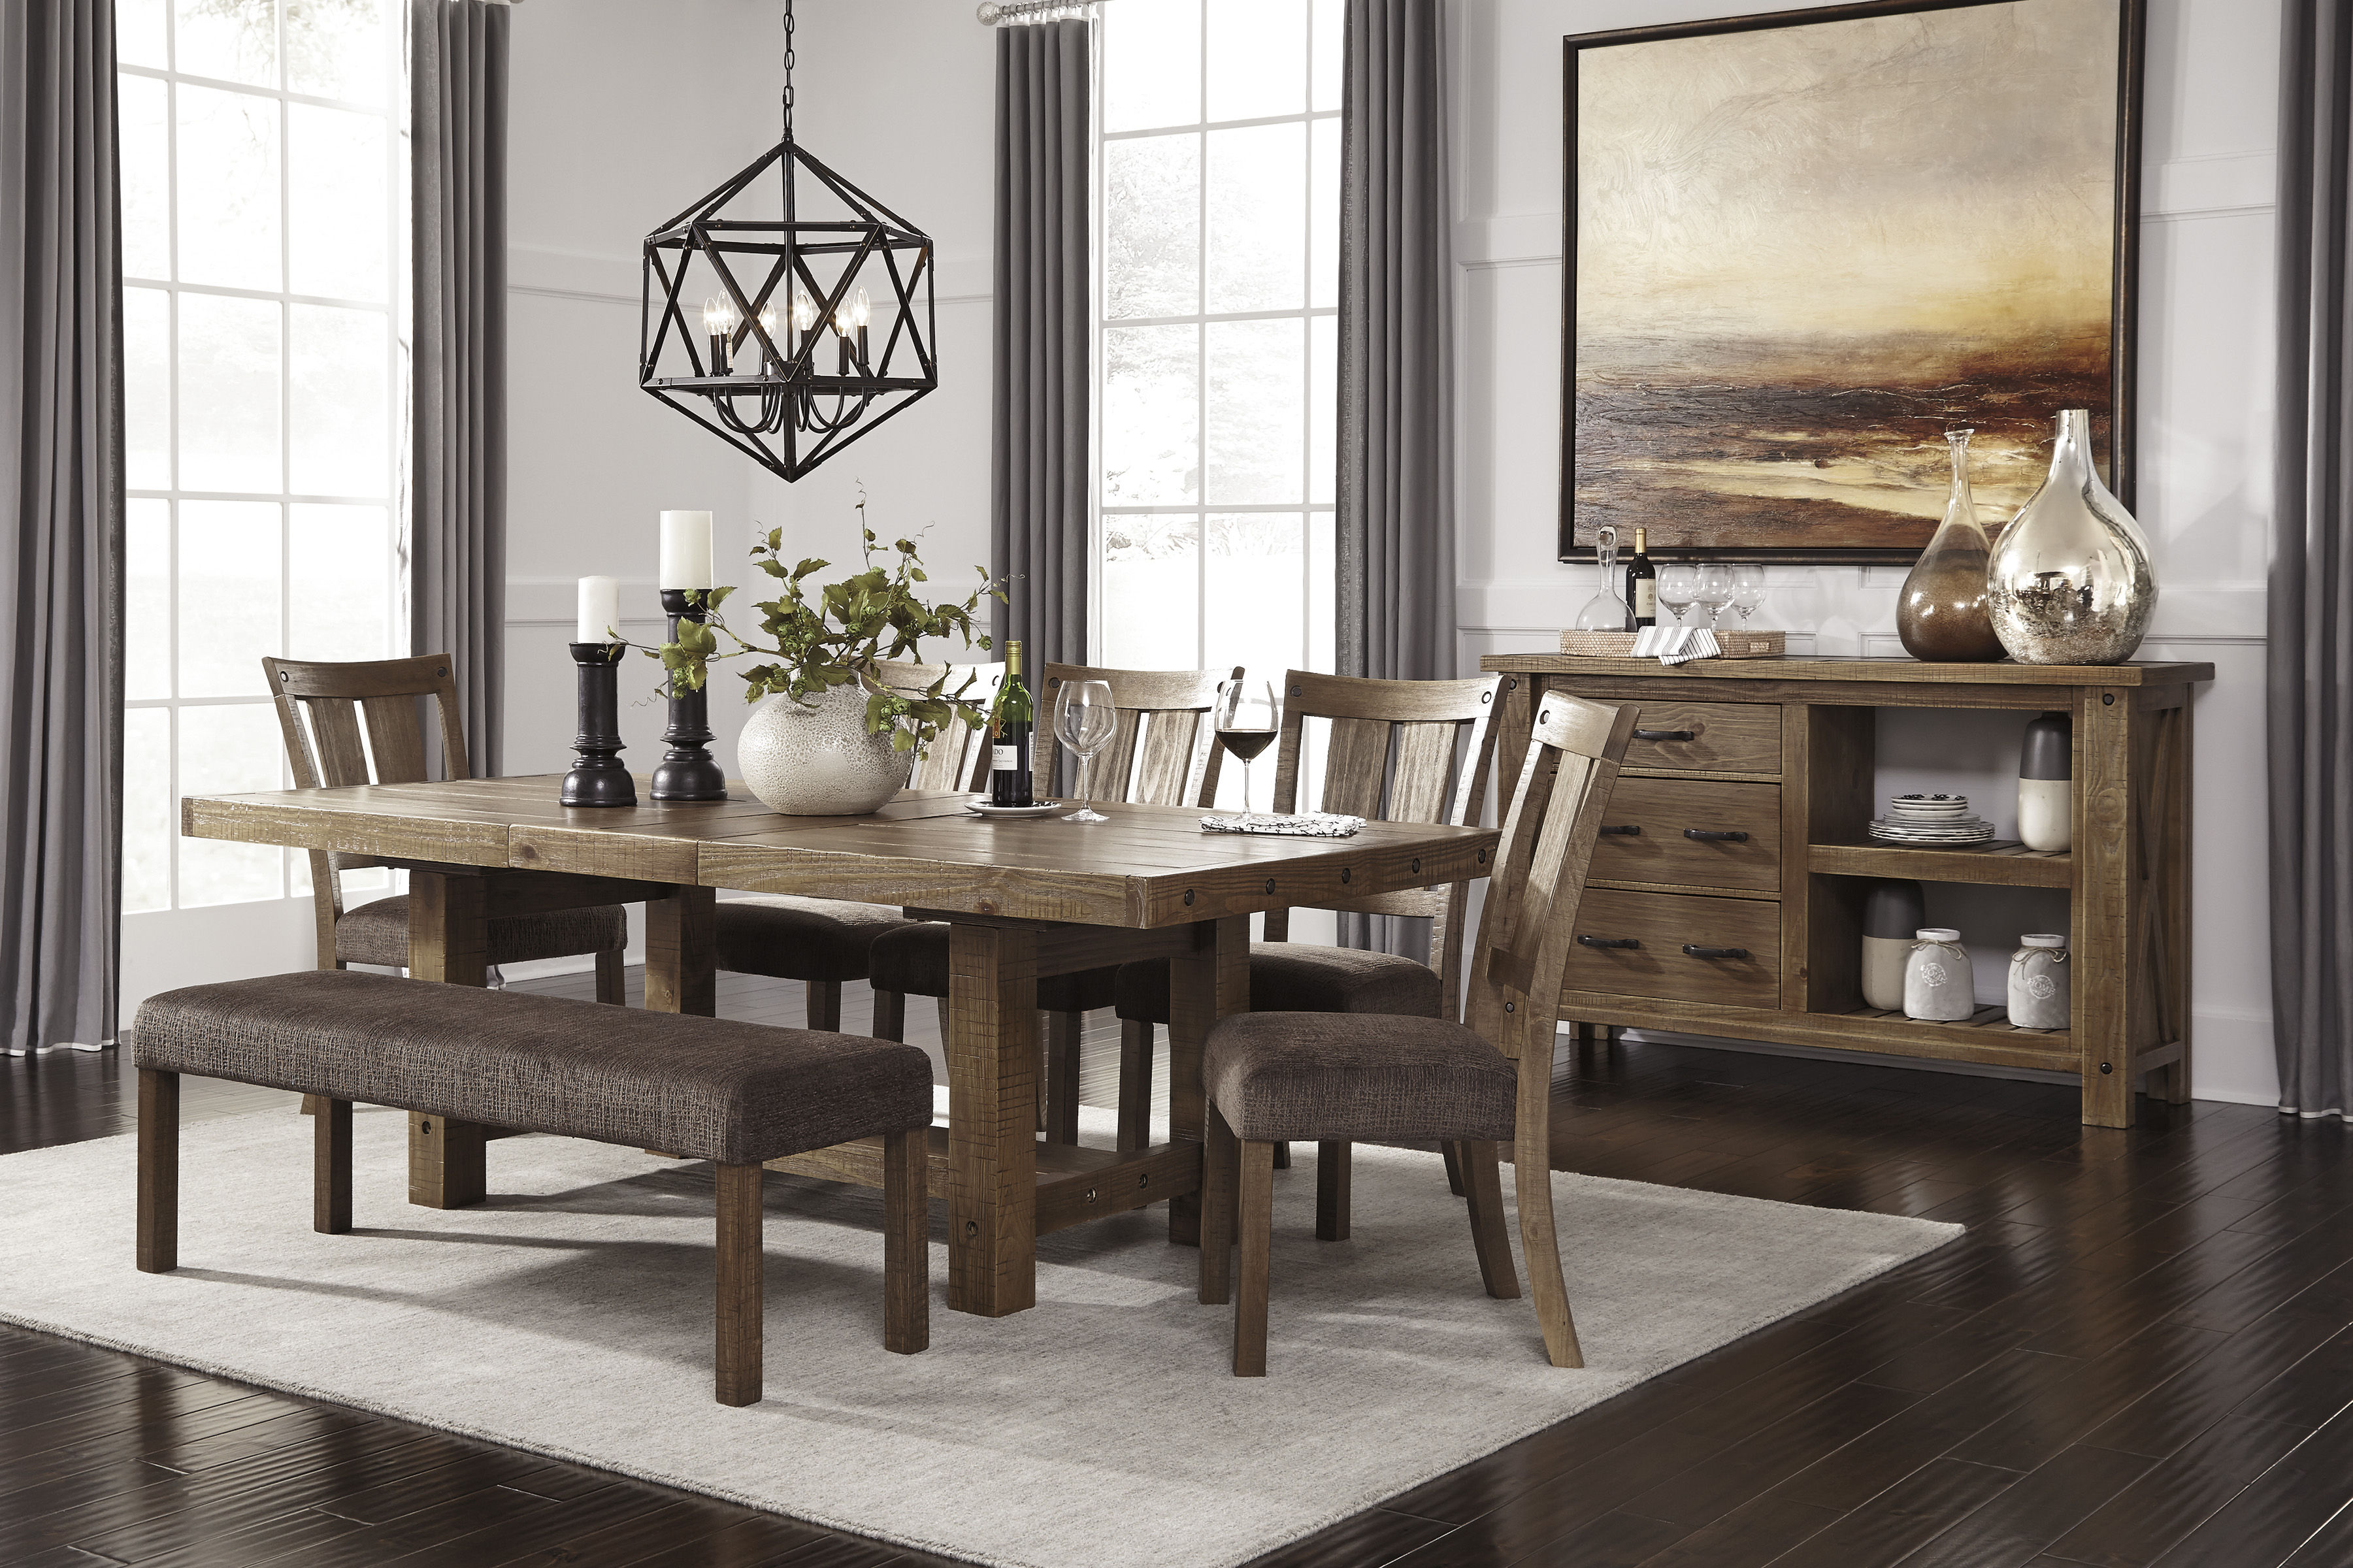 Ashley Furniture Tamilo 8pc Dining Room Set with Bench ...